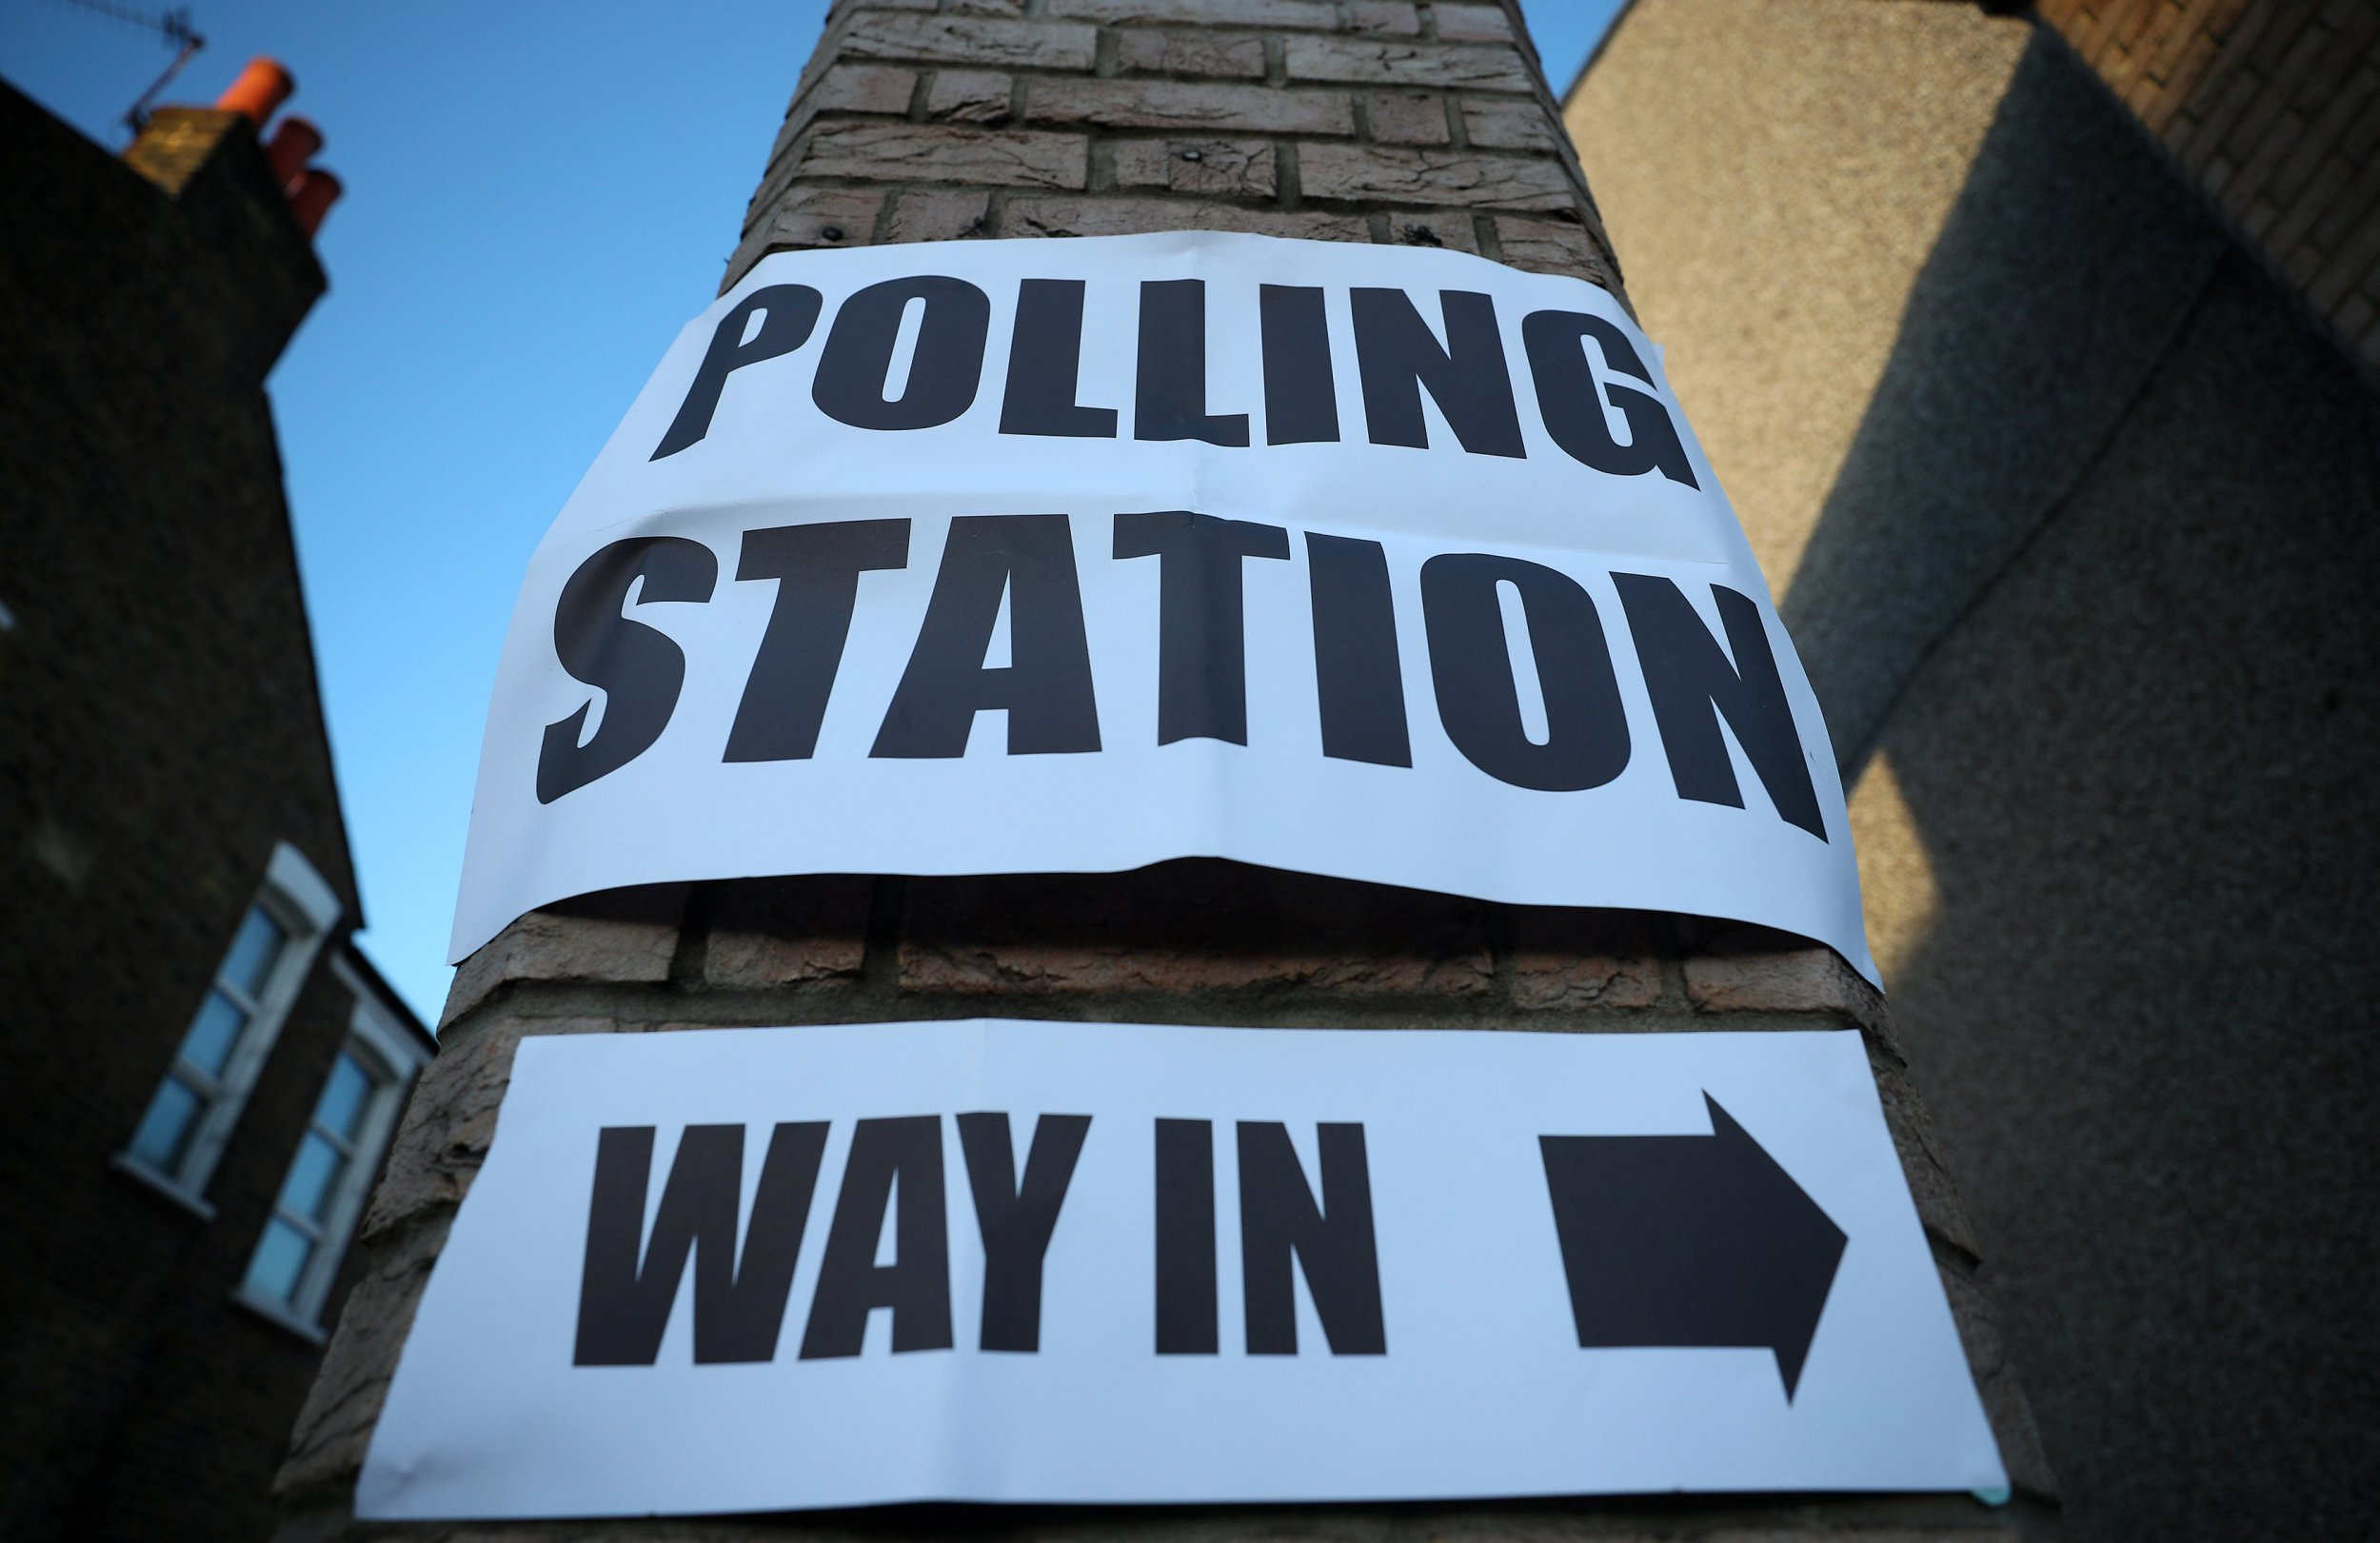 How to find out who the local election candidates are in your area